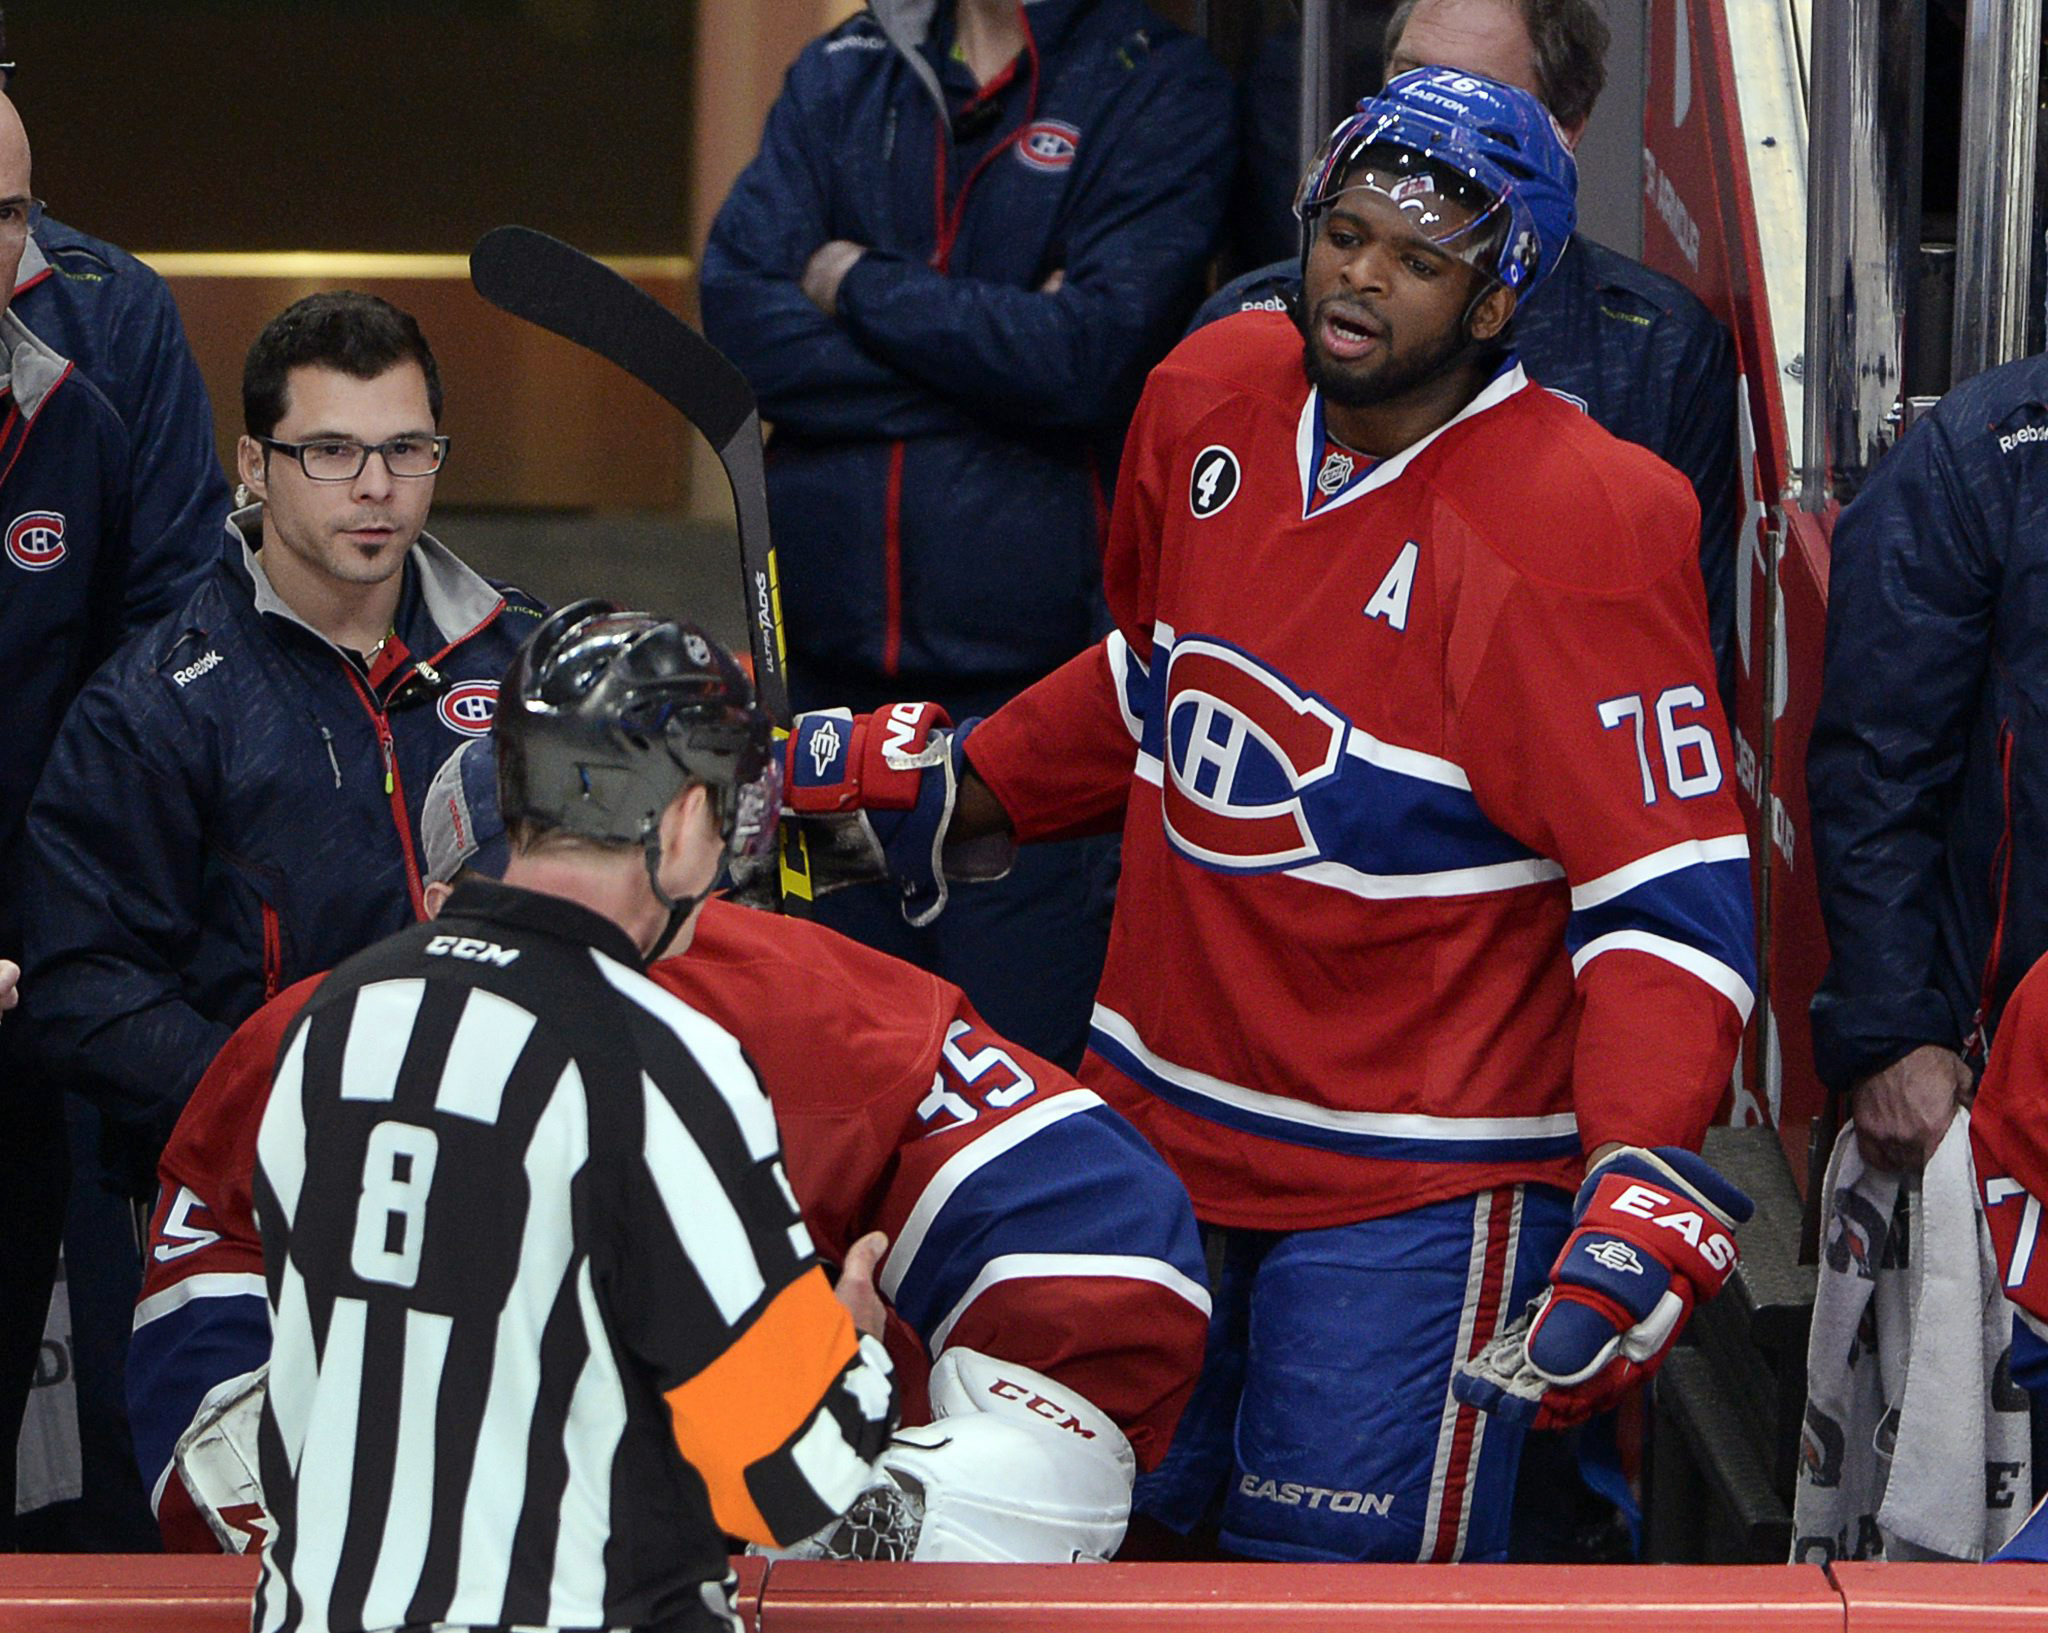 Montreal Canadiens defenseman P.K. Subban (76) argues with referee Dave Jackson after receiving a game misconduct during the second period of Game 1 in an NHL hockey first-round playoff series against the Ottawa Senators on Wednesday, April 15, 2015, in M